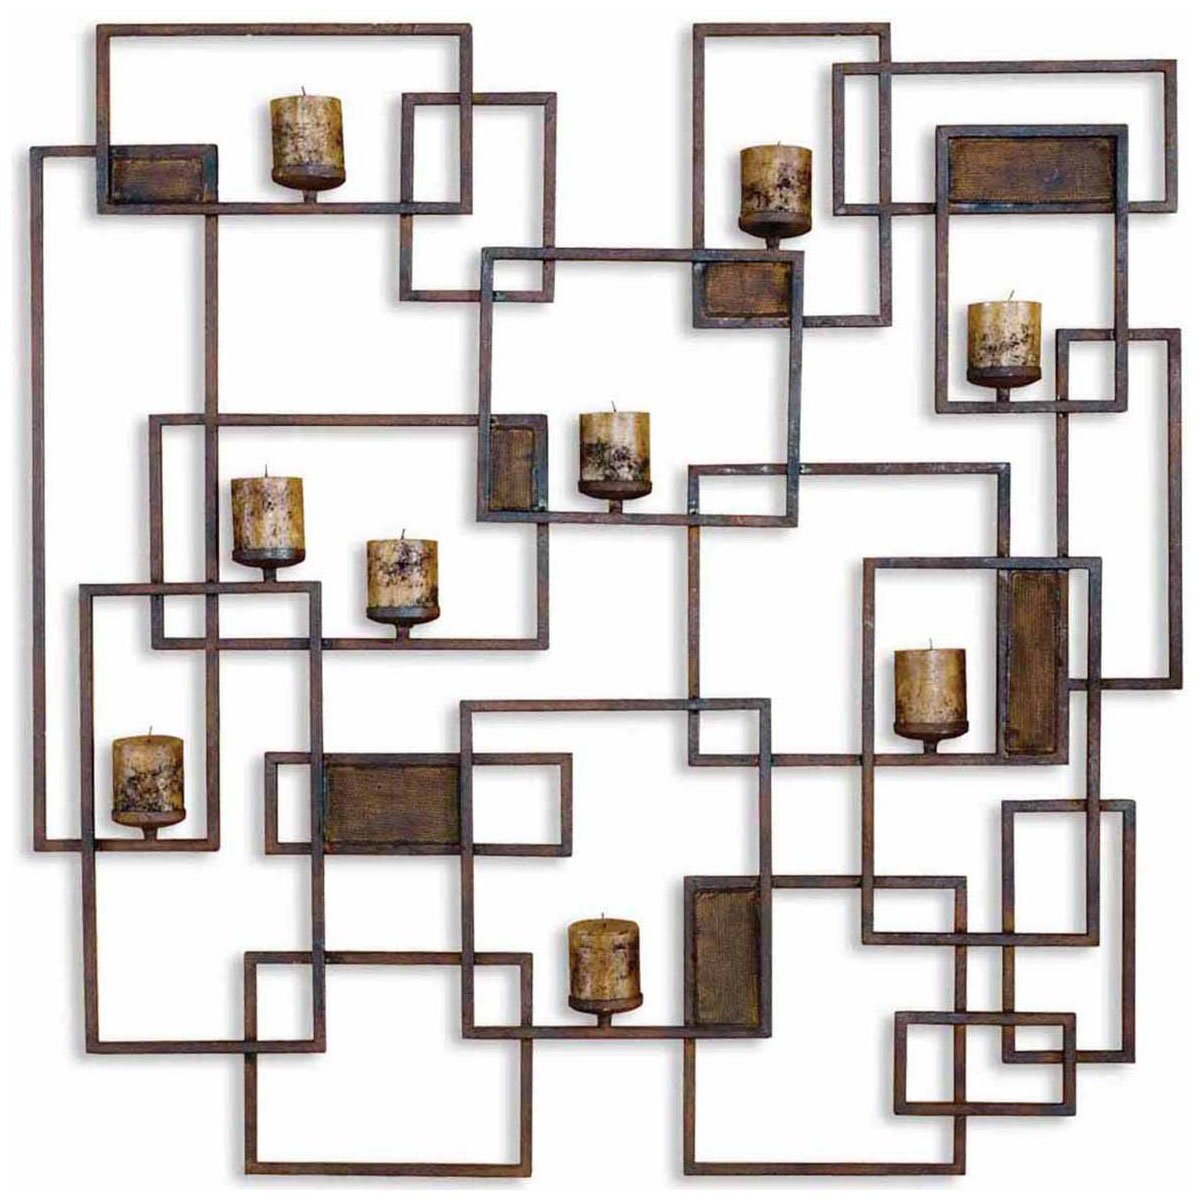 Amazon uttermost 20850 siam metal candlelight wall sculpture amazon uttermost 20850 siam metal candlelight wall sculpture home kitchen amipublicfo Images